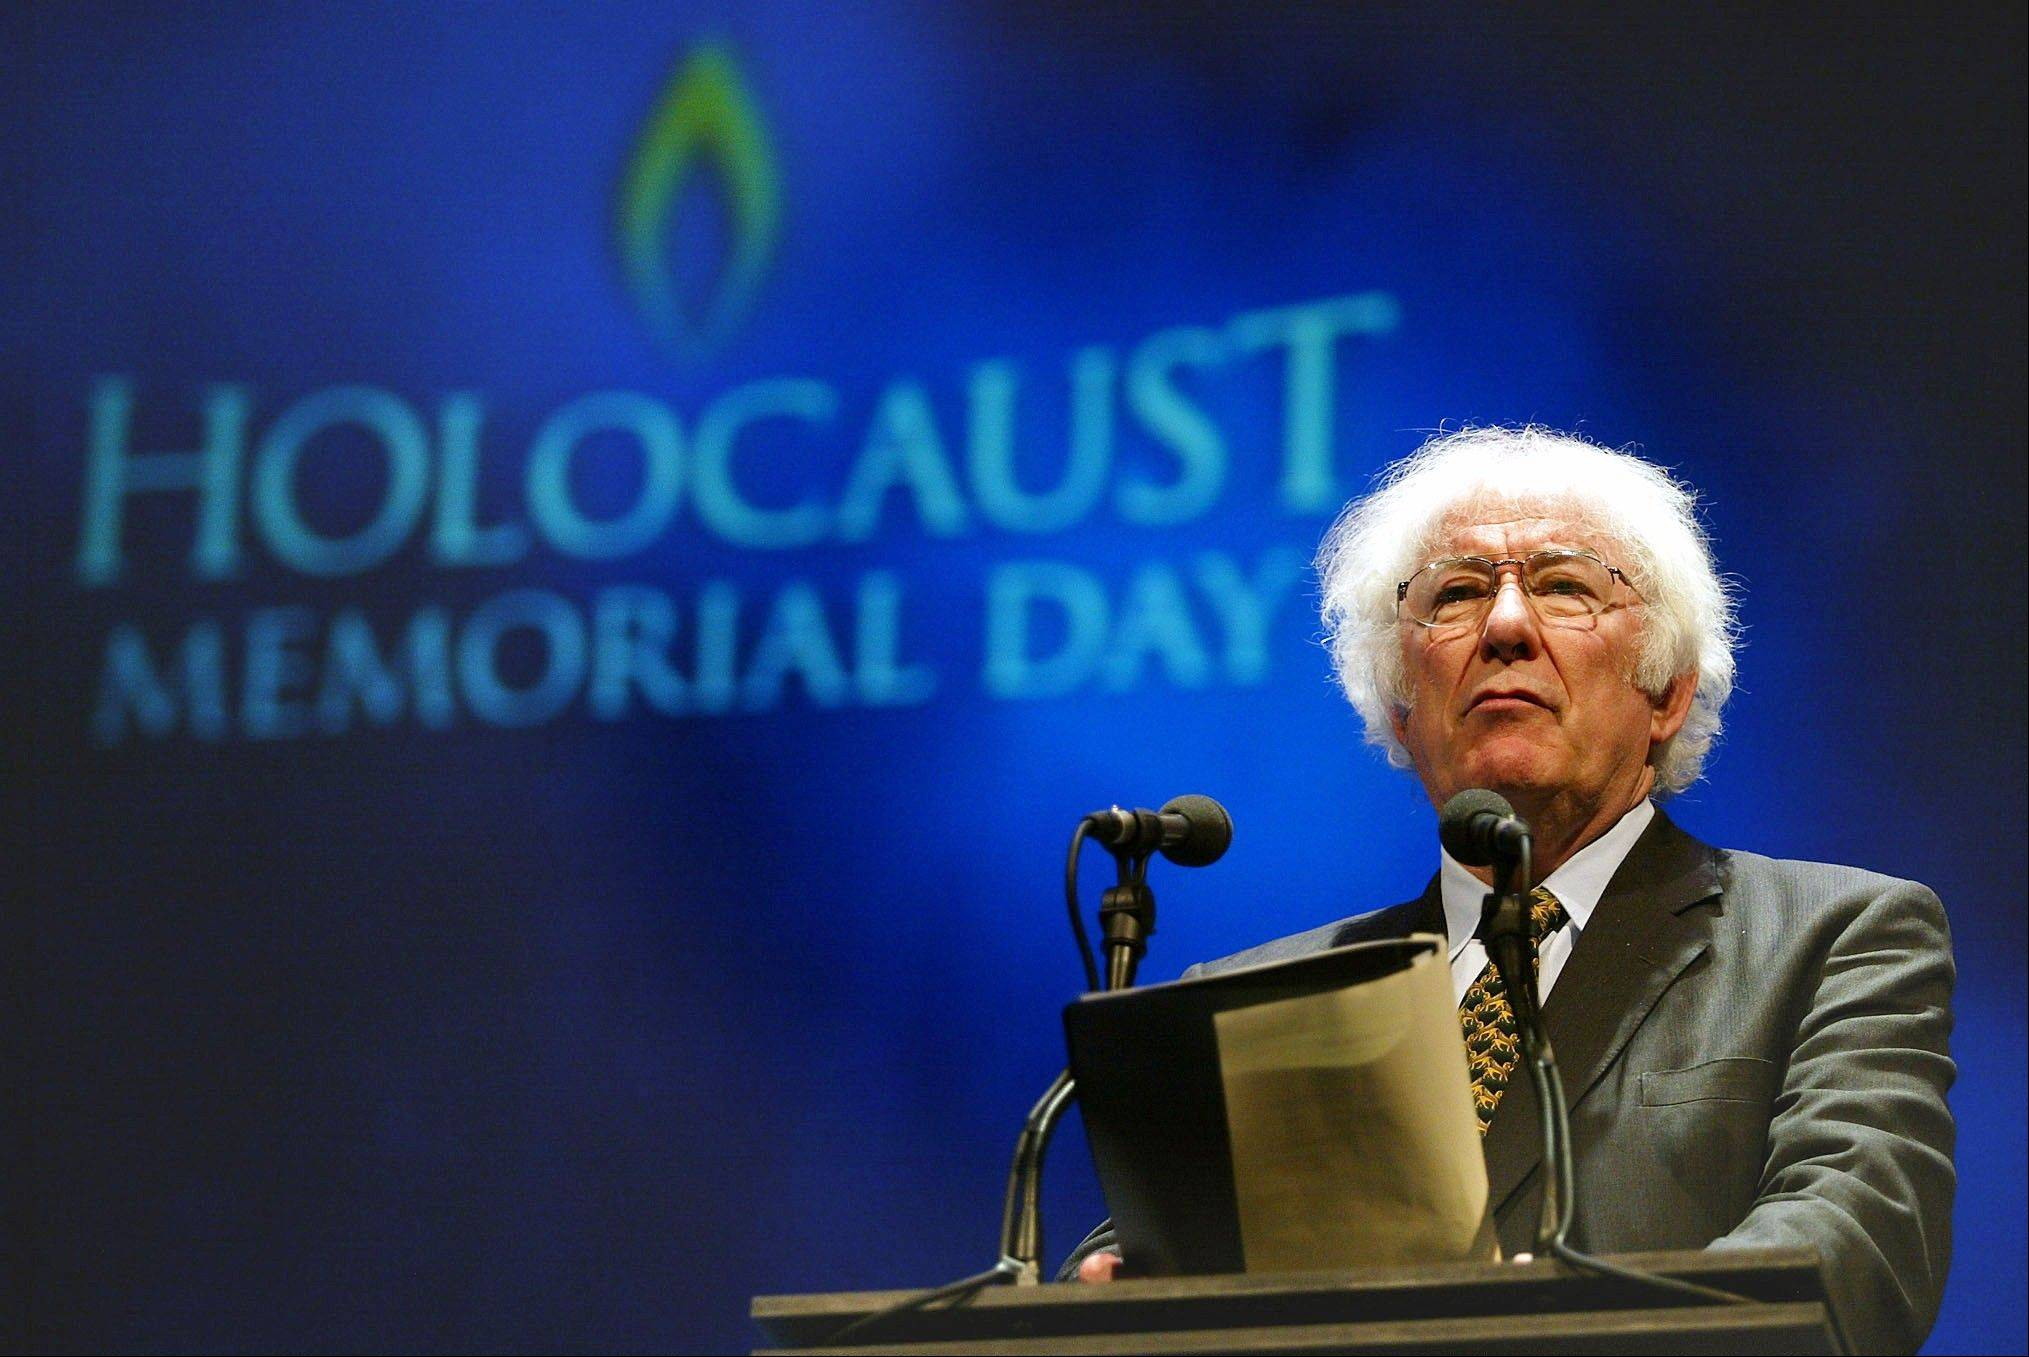 Nobel Prize winning poet Seamus Heaney